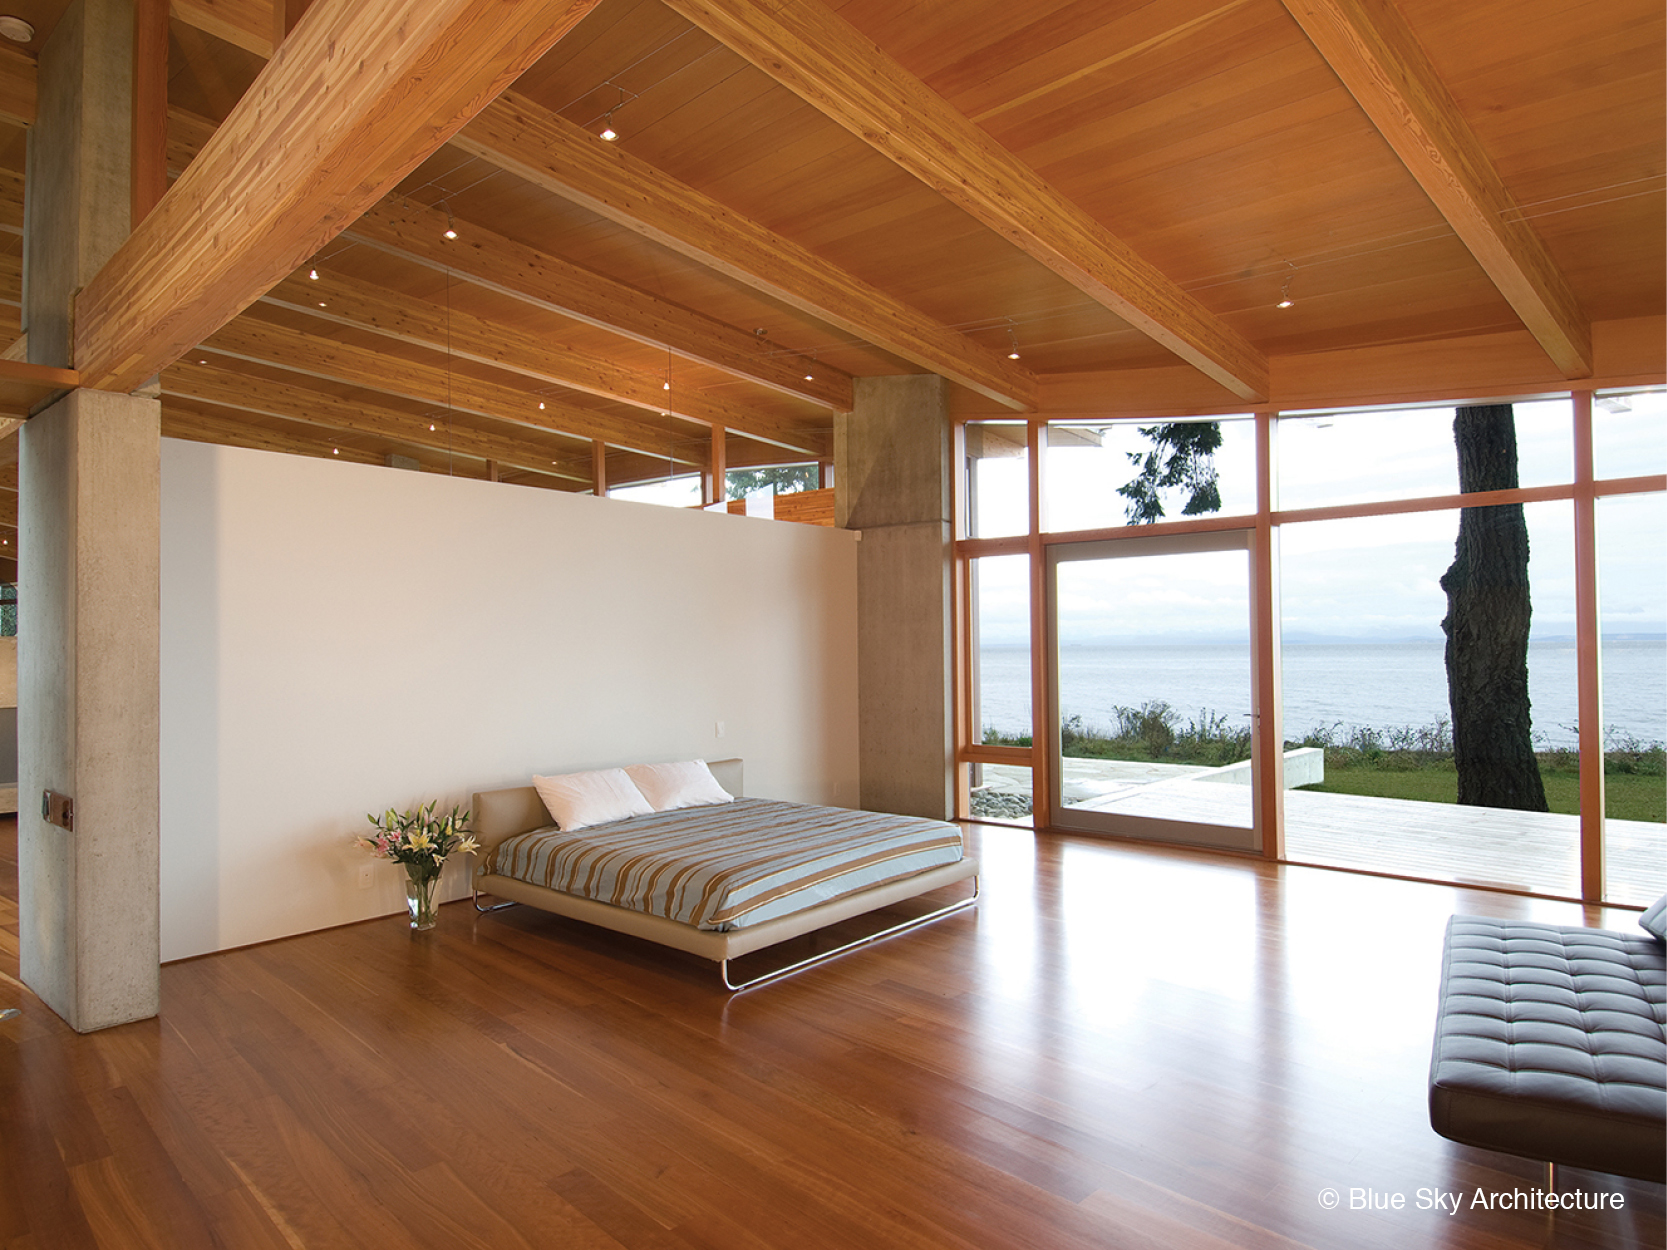 Wood rafters and natural lighting in a minimalist bedroom